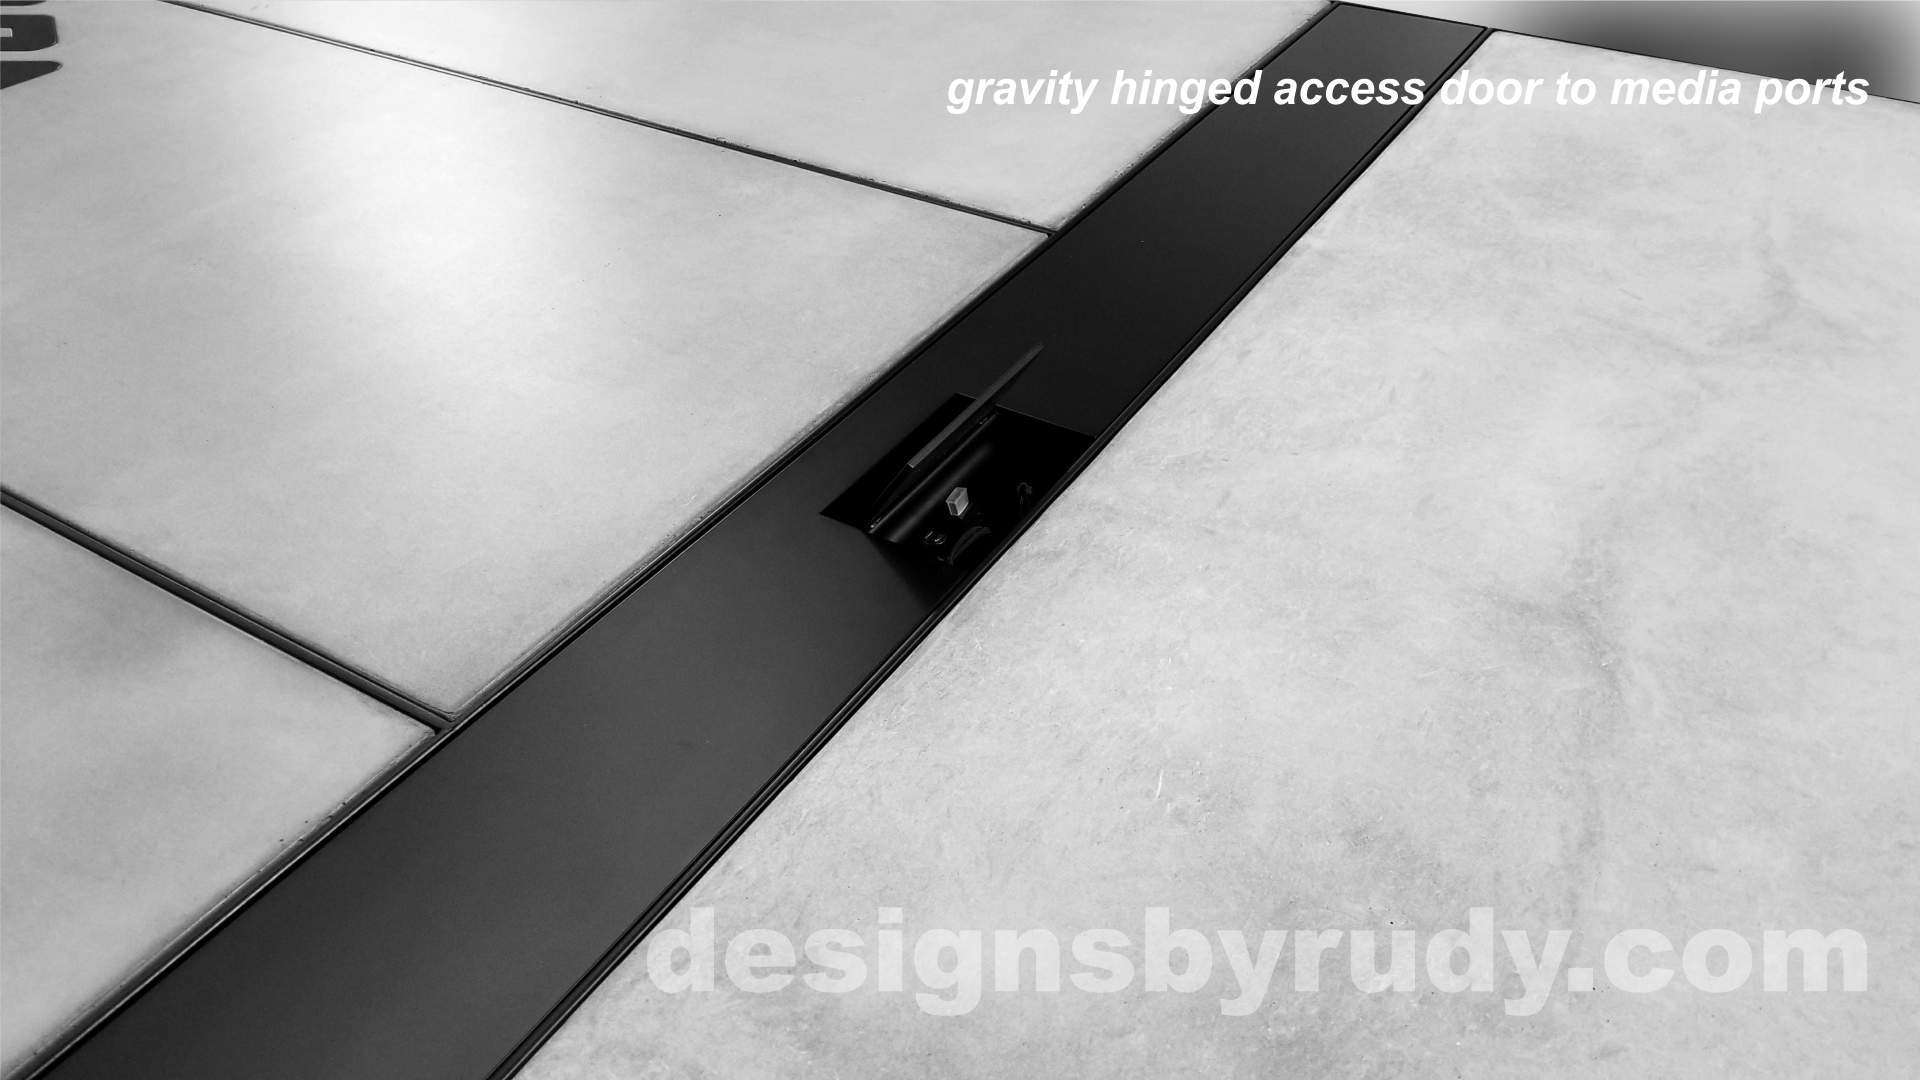 6 Concrete and Steel Conference Room Table for Markforged gravity hinged media ports access door Designs by Rudy